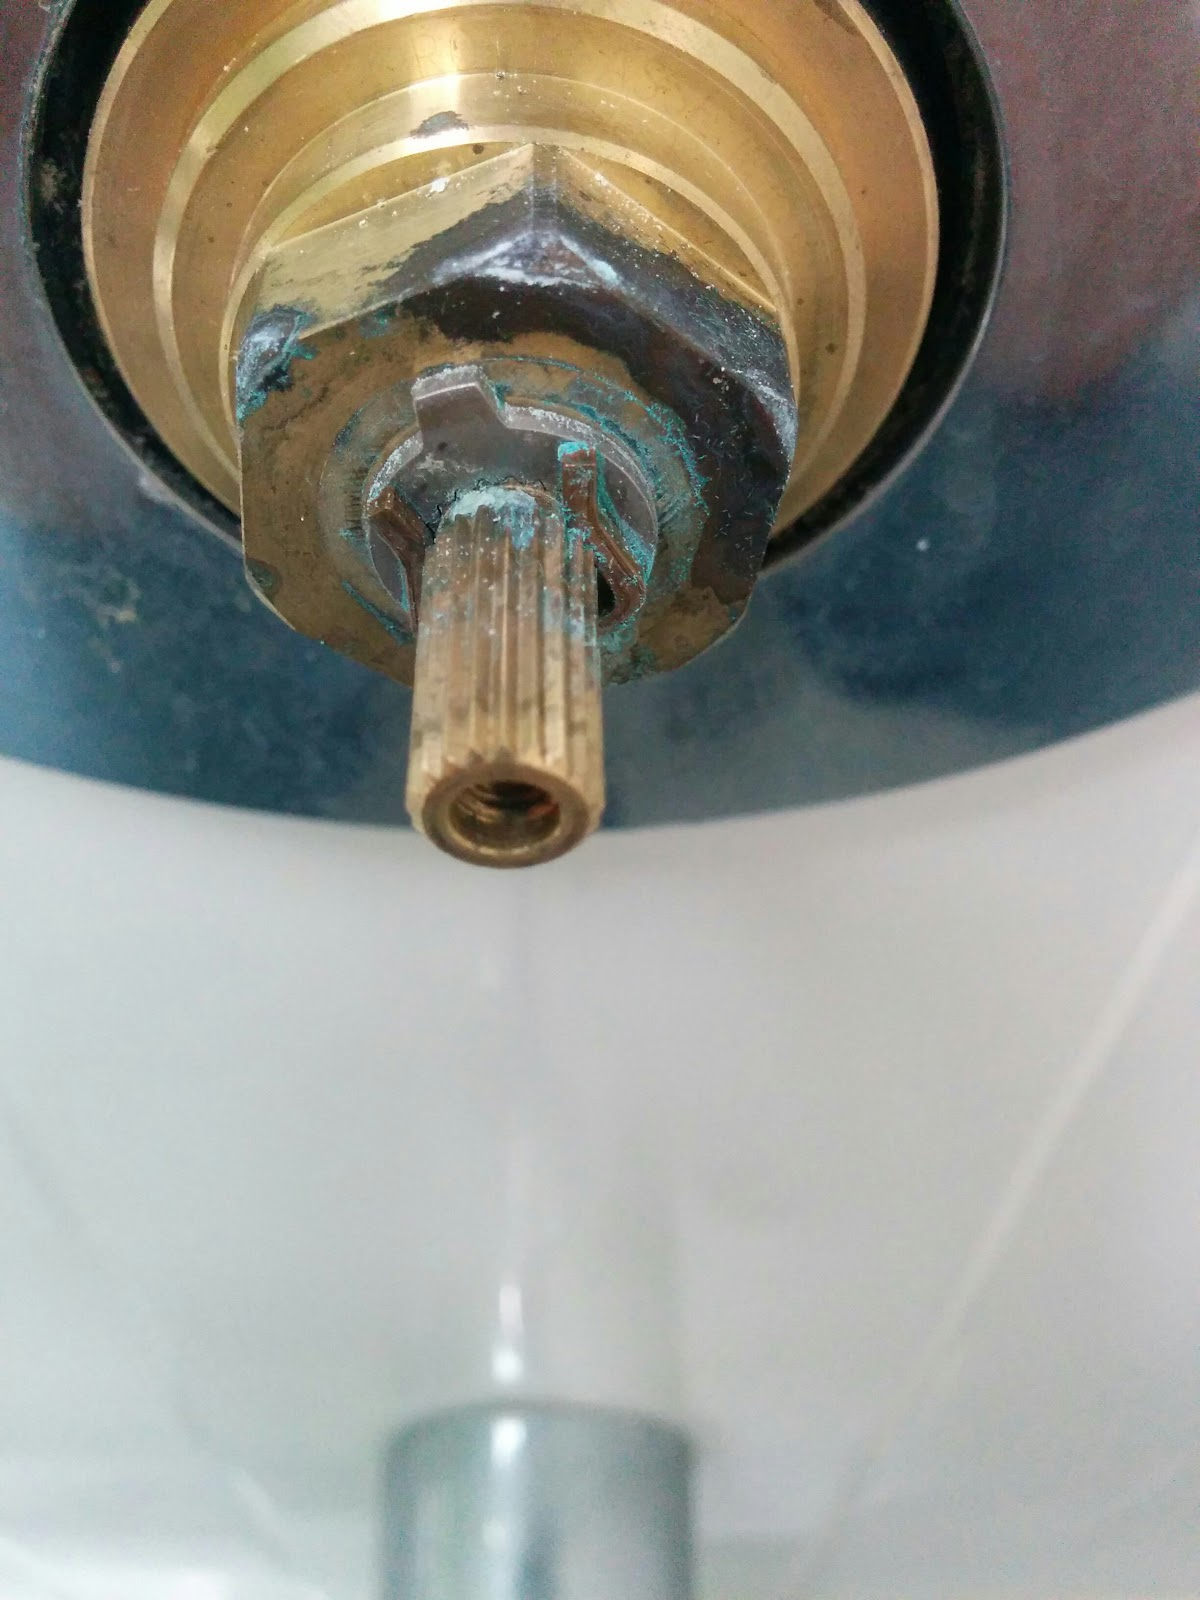 hansgrohe shower valve. The Top Of Thermostatic Cartridge Hansgrohe Shower Valve